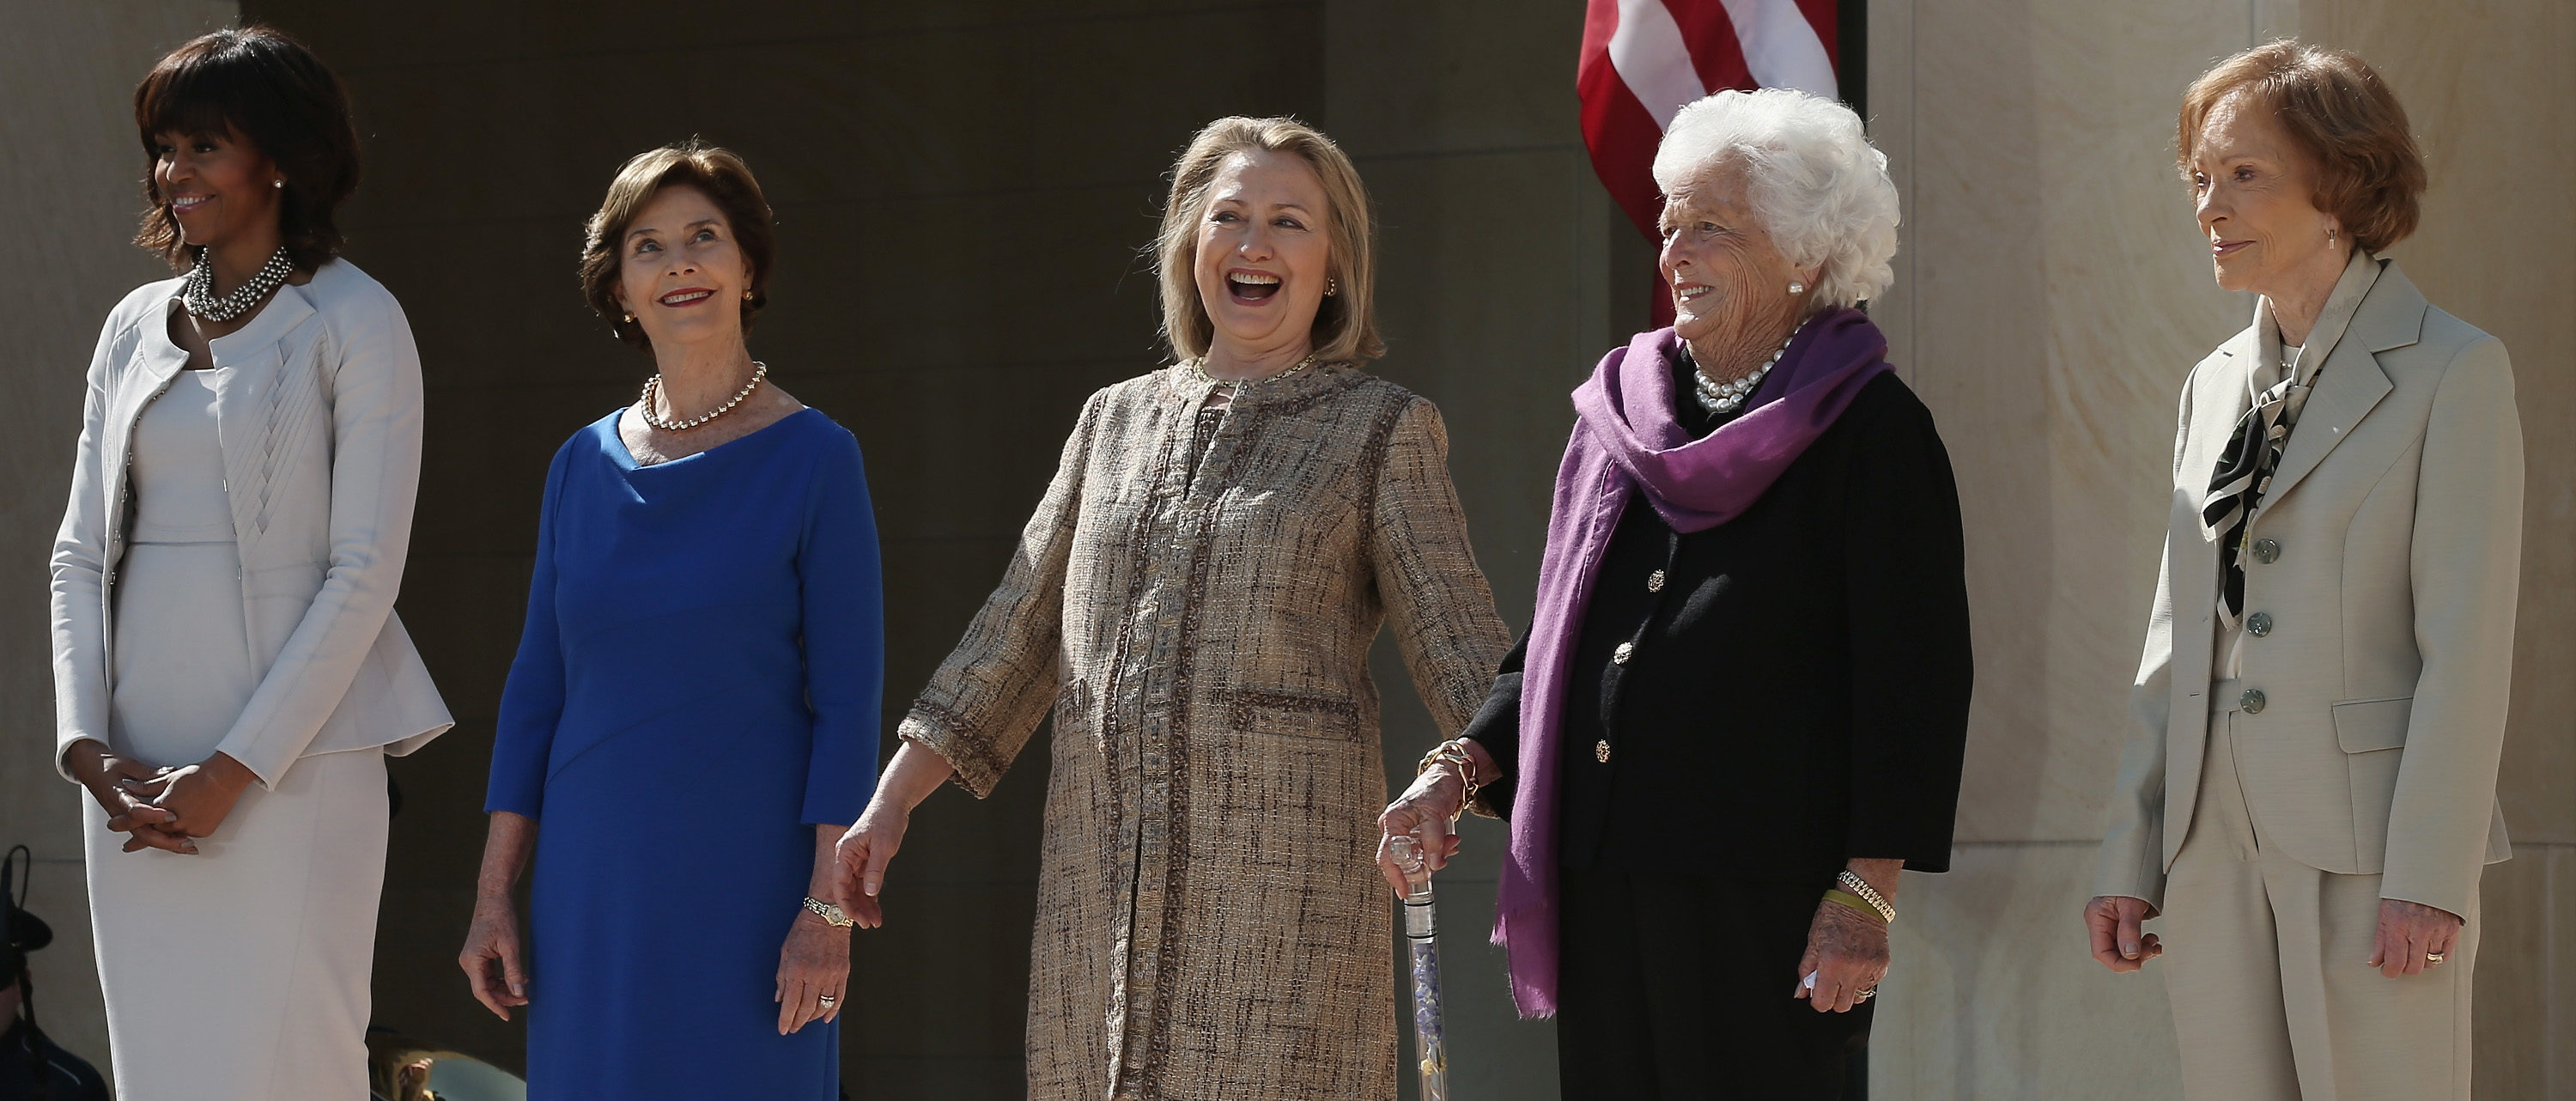 DALLAS, TX - APRIL 25: (L-R) First lady Michelle Obama, former first lady Laura Bush, former first lady Hillary Clinton, former first lady Barbara Bush and former first lady Rosalynn Carter attend the opening ceremony of the George W. Bush Presidential Center April 25, 2013 in Dallas, Texas. The Bush library, which is located on the campus of Southern Methodist University, with more than 70 million pages of paper records, 43,000 artifacts, 200 million emails and four million digital photographs, will be opened to the public on May 1, 2013. The library is the 13th presidential library in the National Archives and Records Administration system. (Photo by Alex Wong/Getty Images)